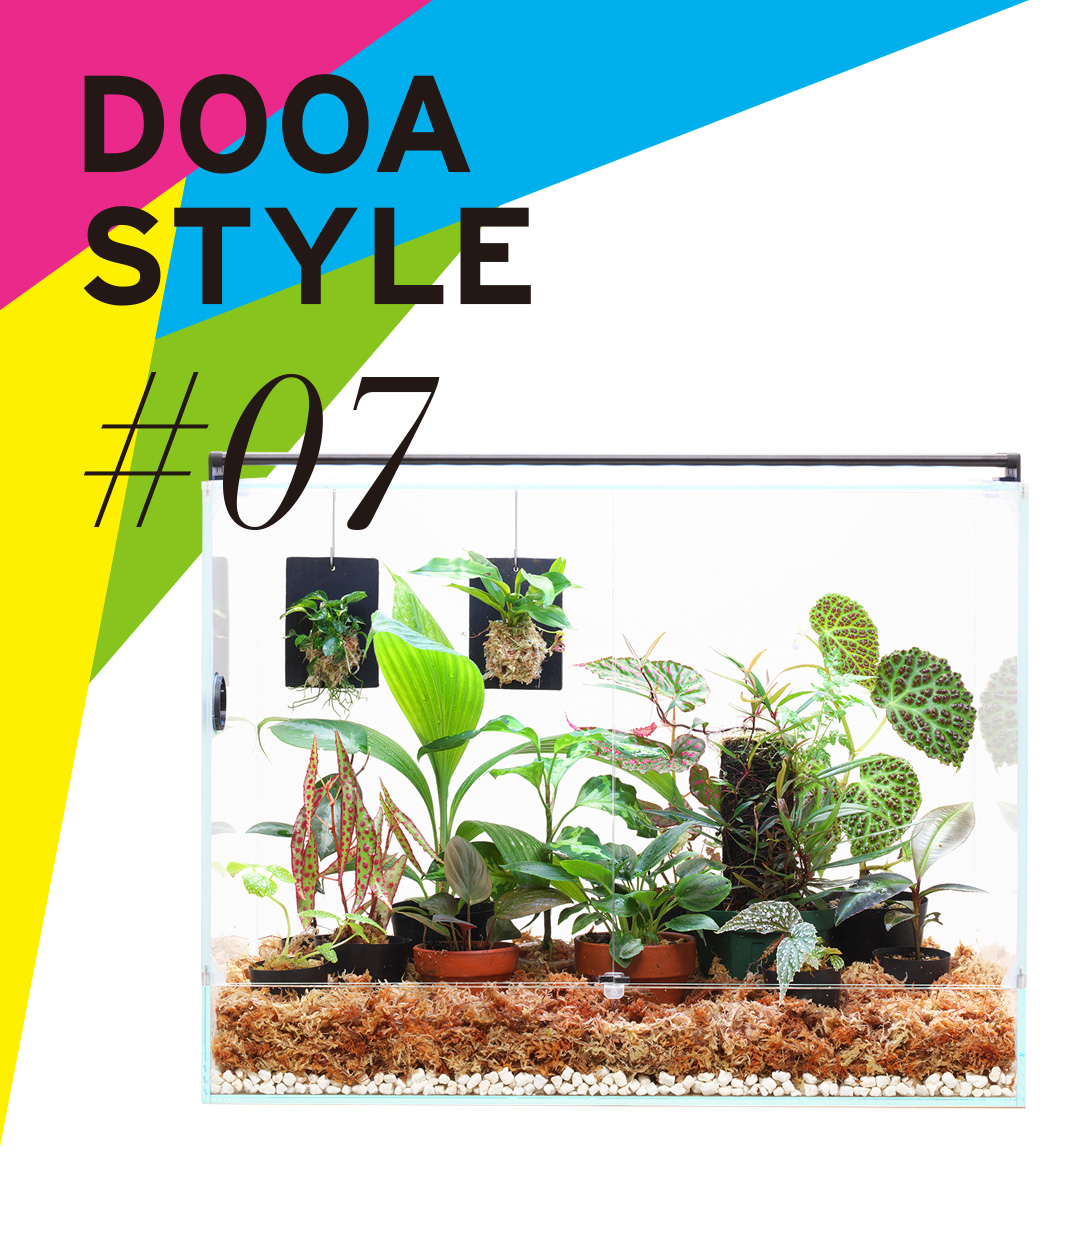 DOOA STYLE #7 'A living room for Jungle Plants'